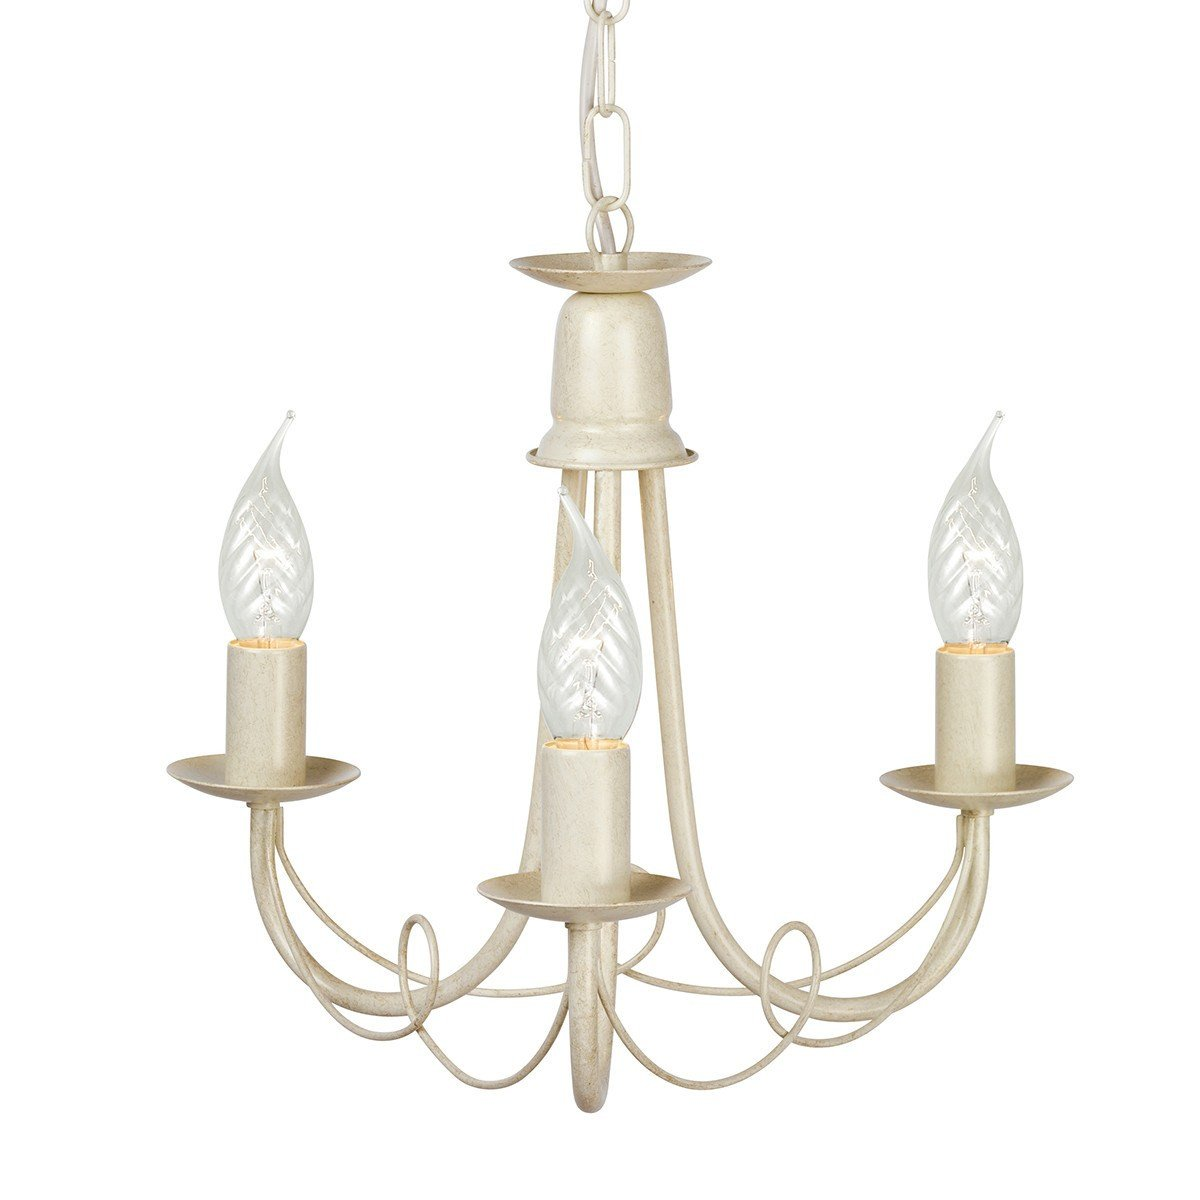 Minster 3 Arm Chandelier - London Lighting - 3